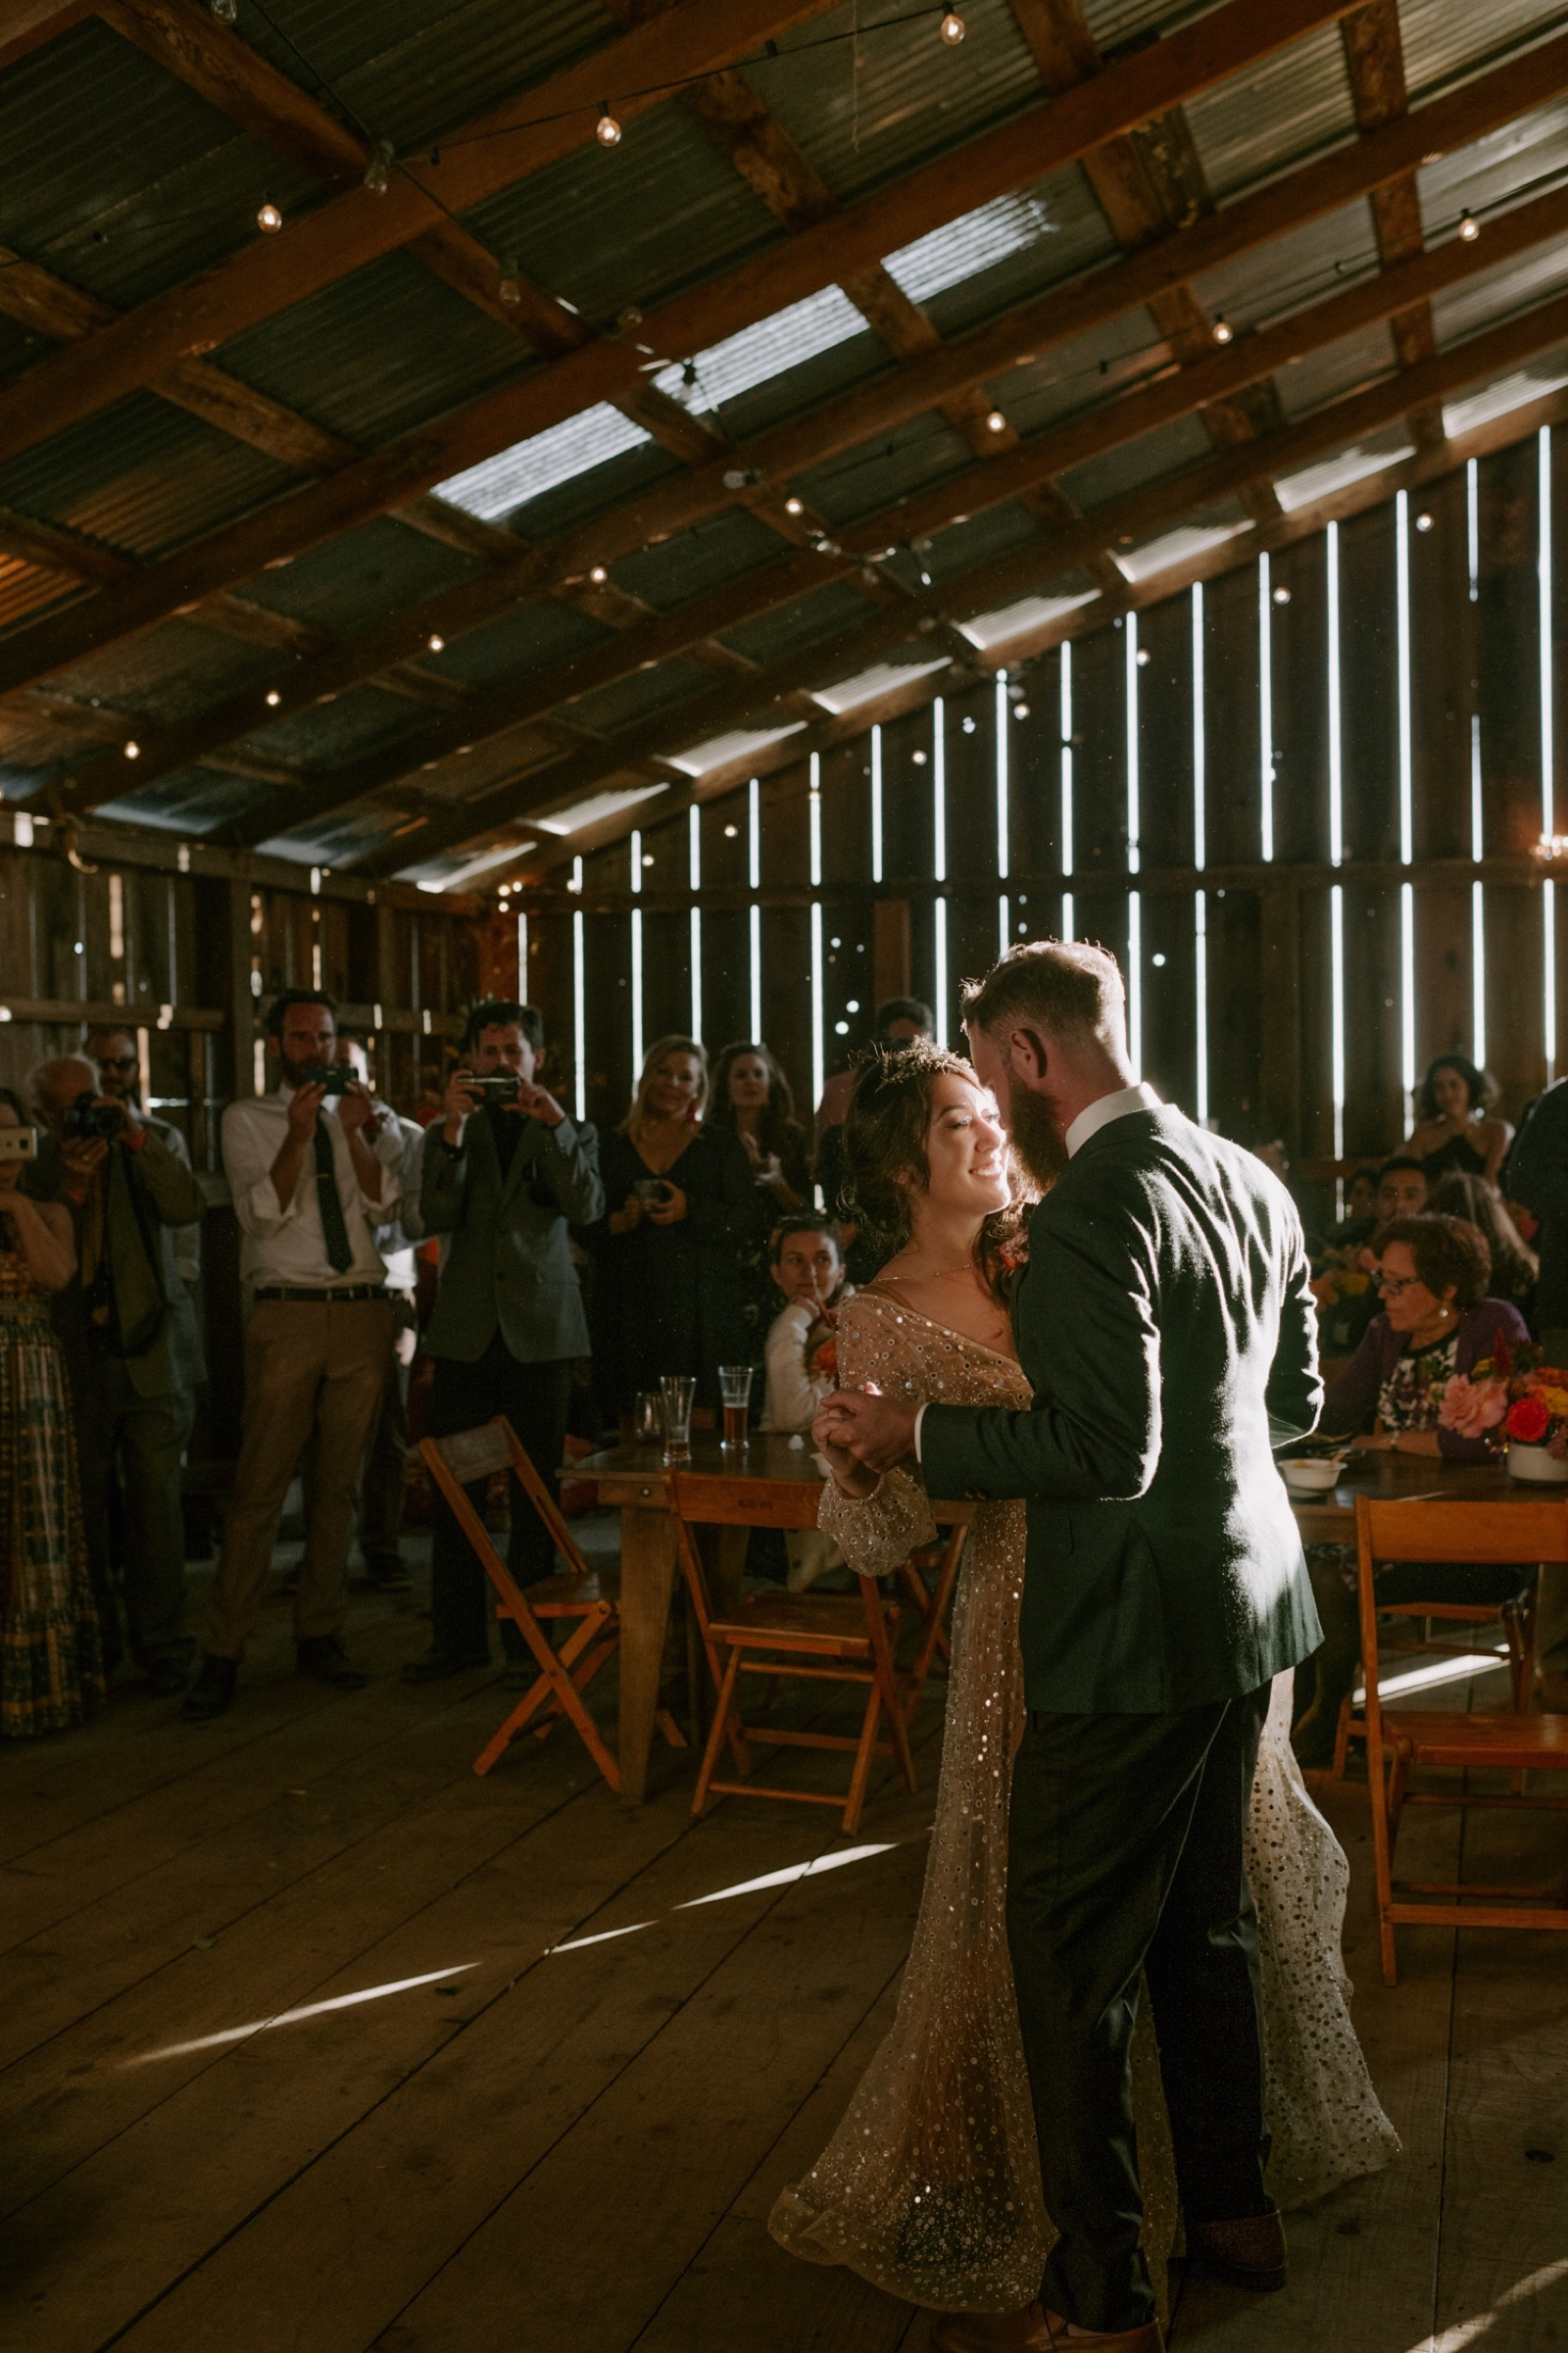 Mendocino_Wedding_Cuffeys_Cove119.JPG